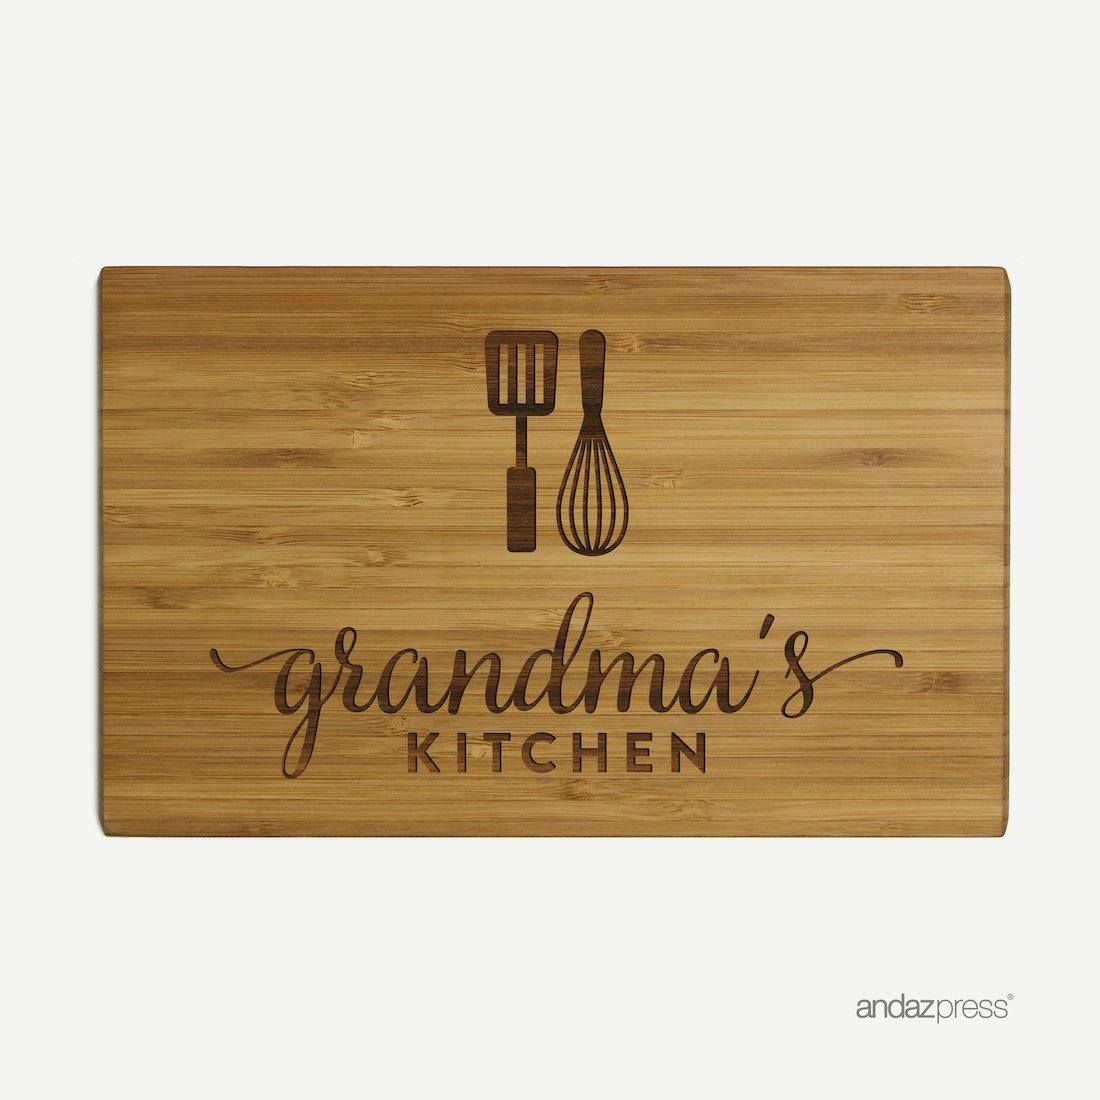 Andaz Press Laser Engraved Small Bamboo Wood Cutting Board, 9.5 x 6-inch, Grandma's Kitchen, 1-Pack by